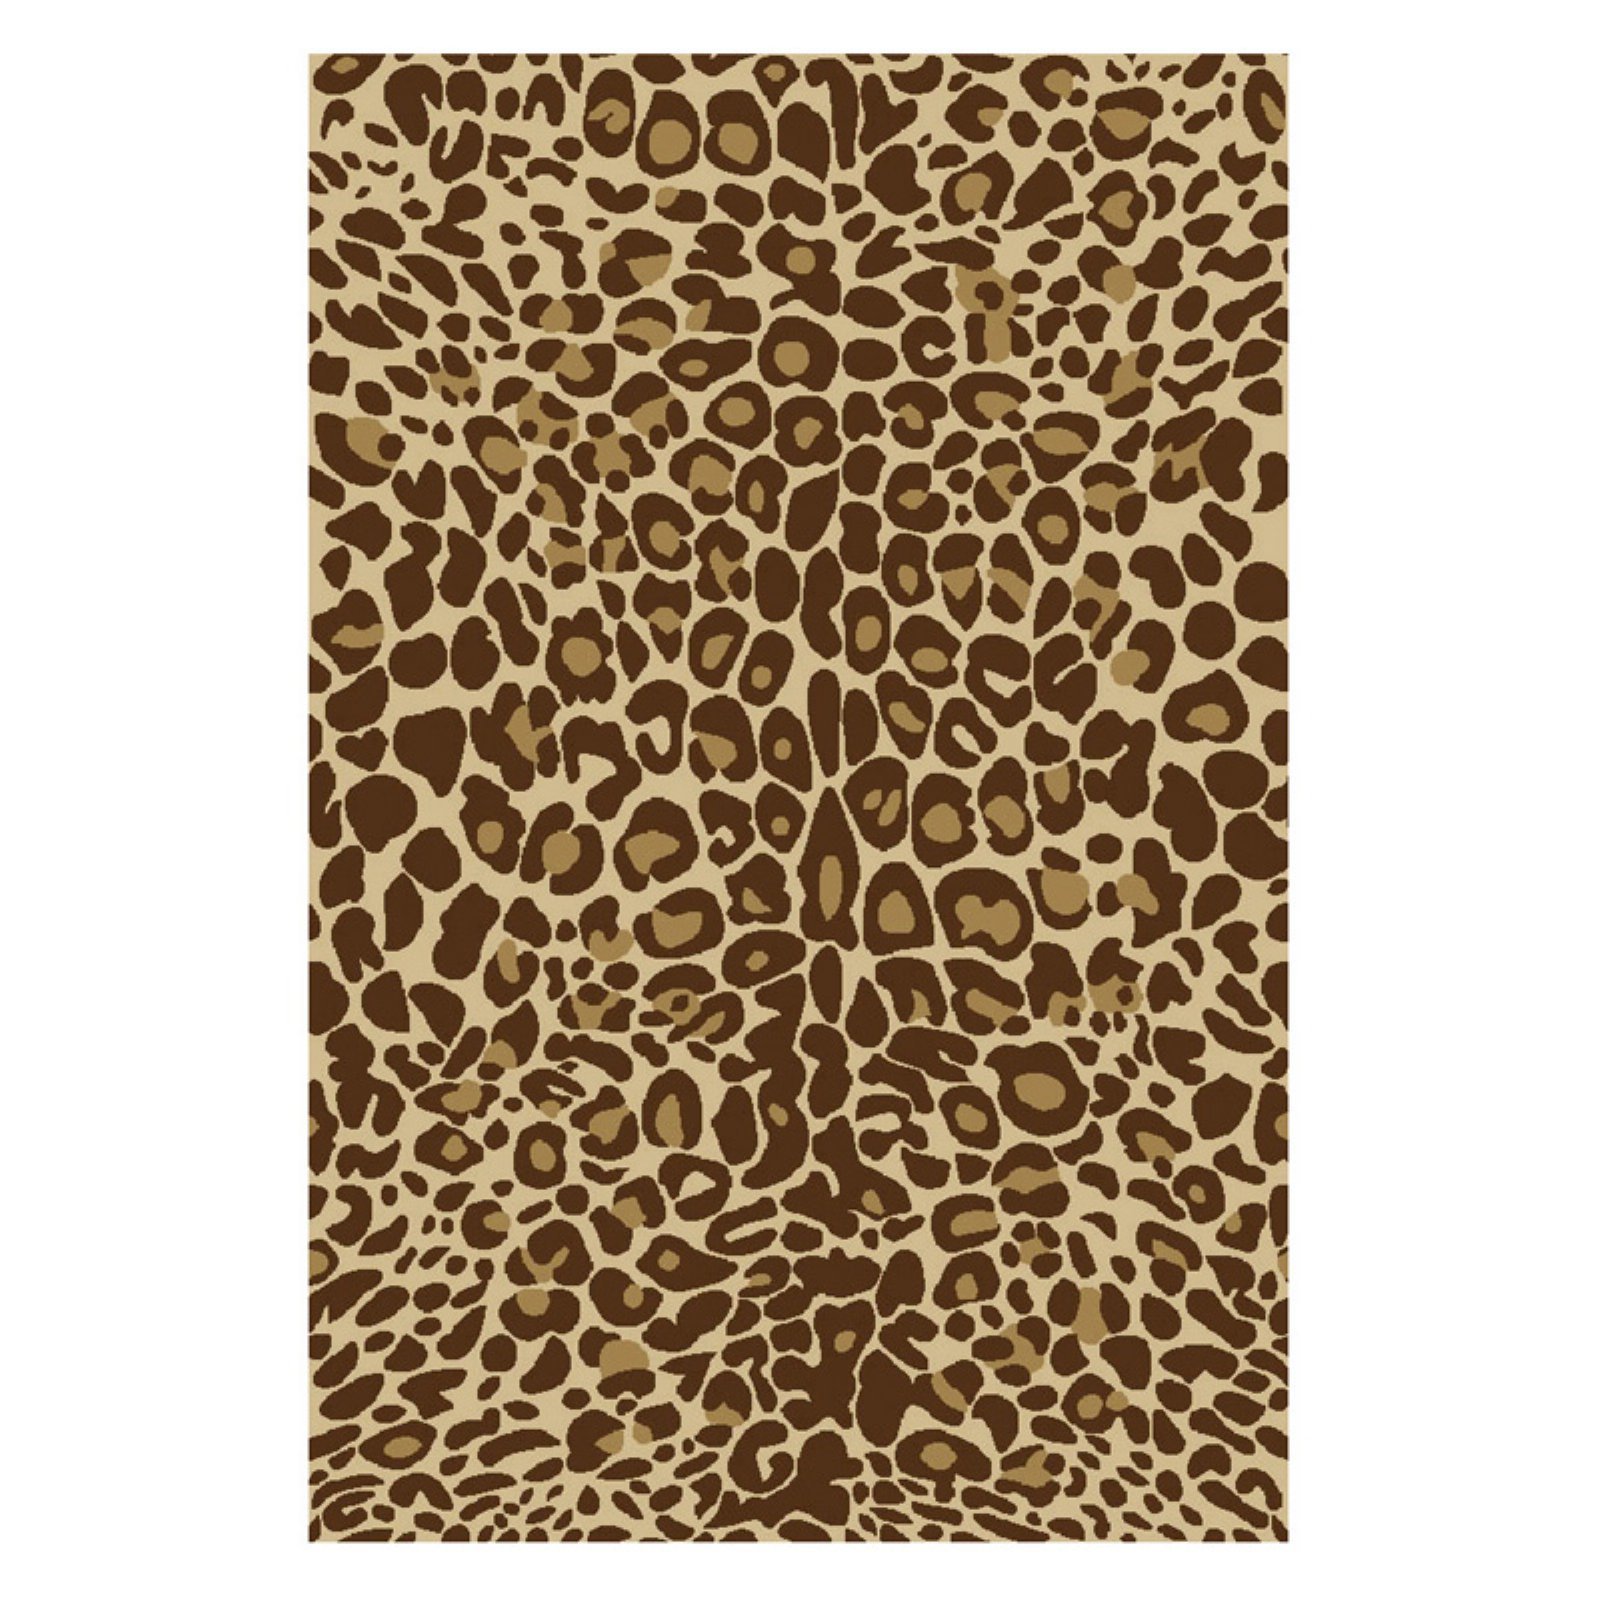 Well Woven Kings Court Leopard Animal Print Brown Area Rug